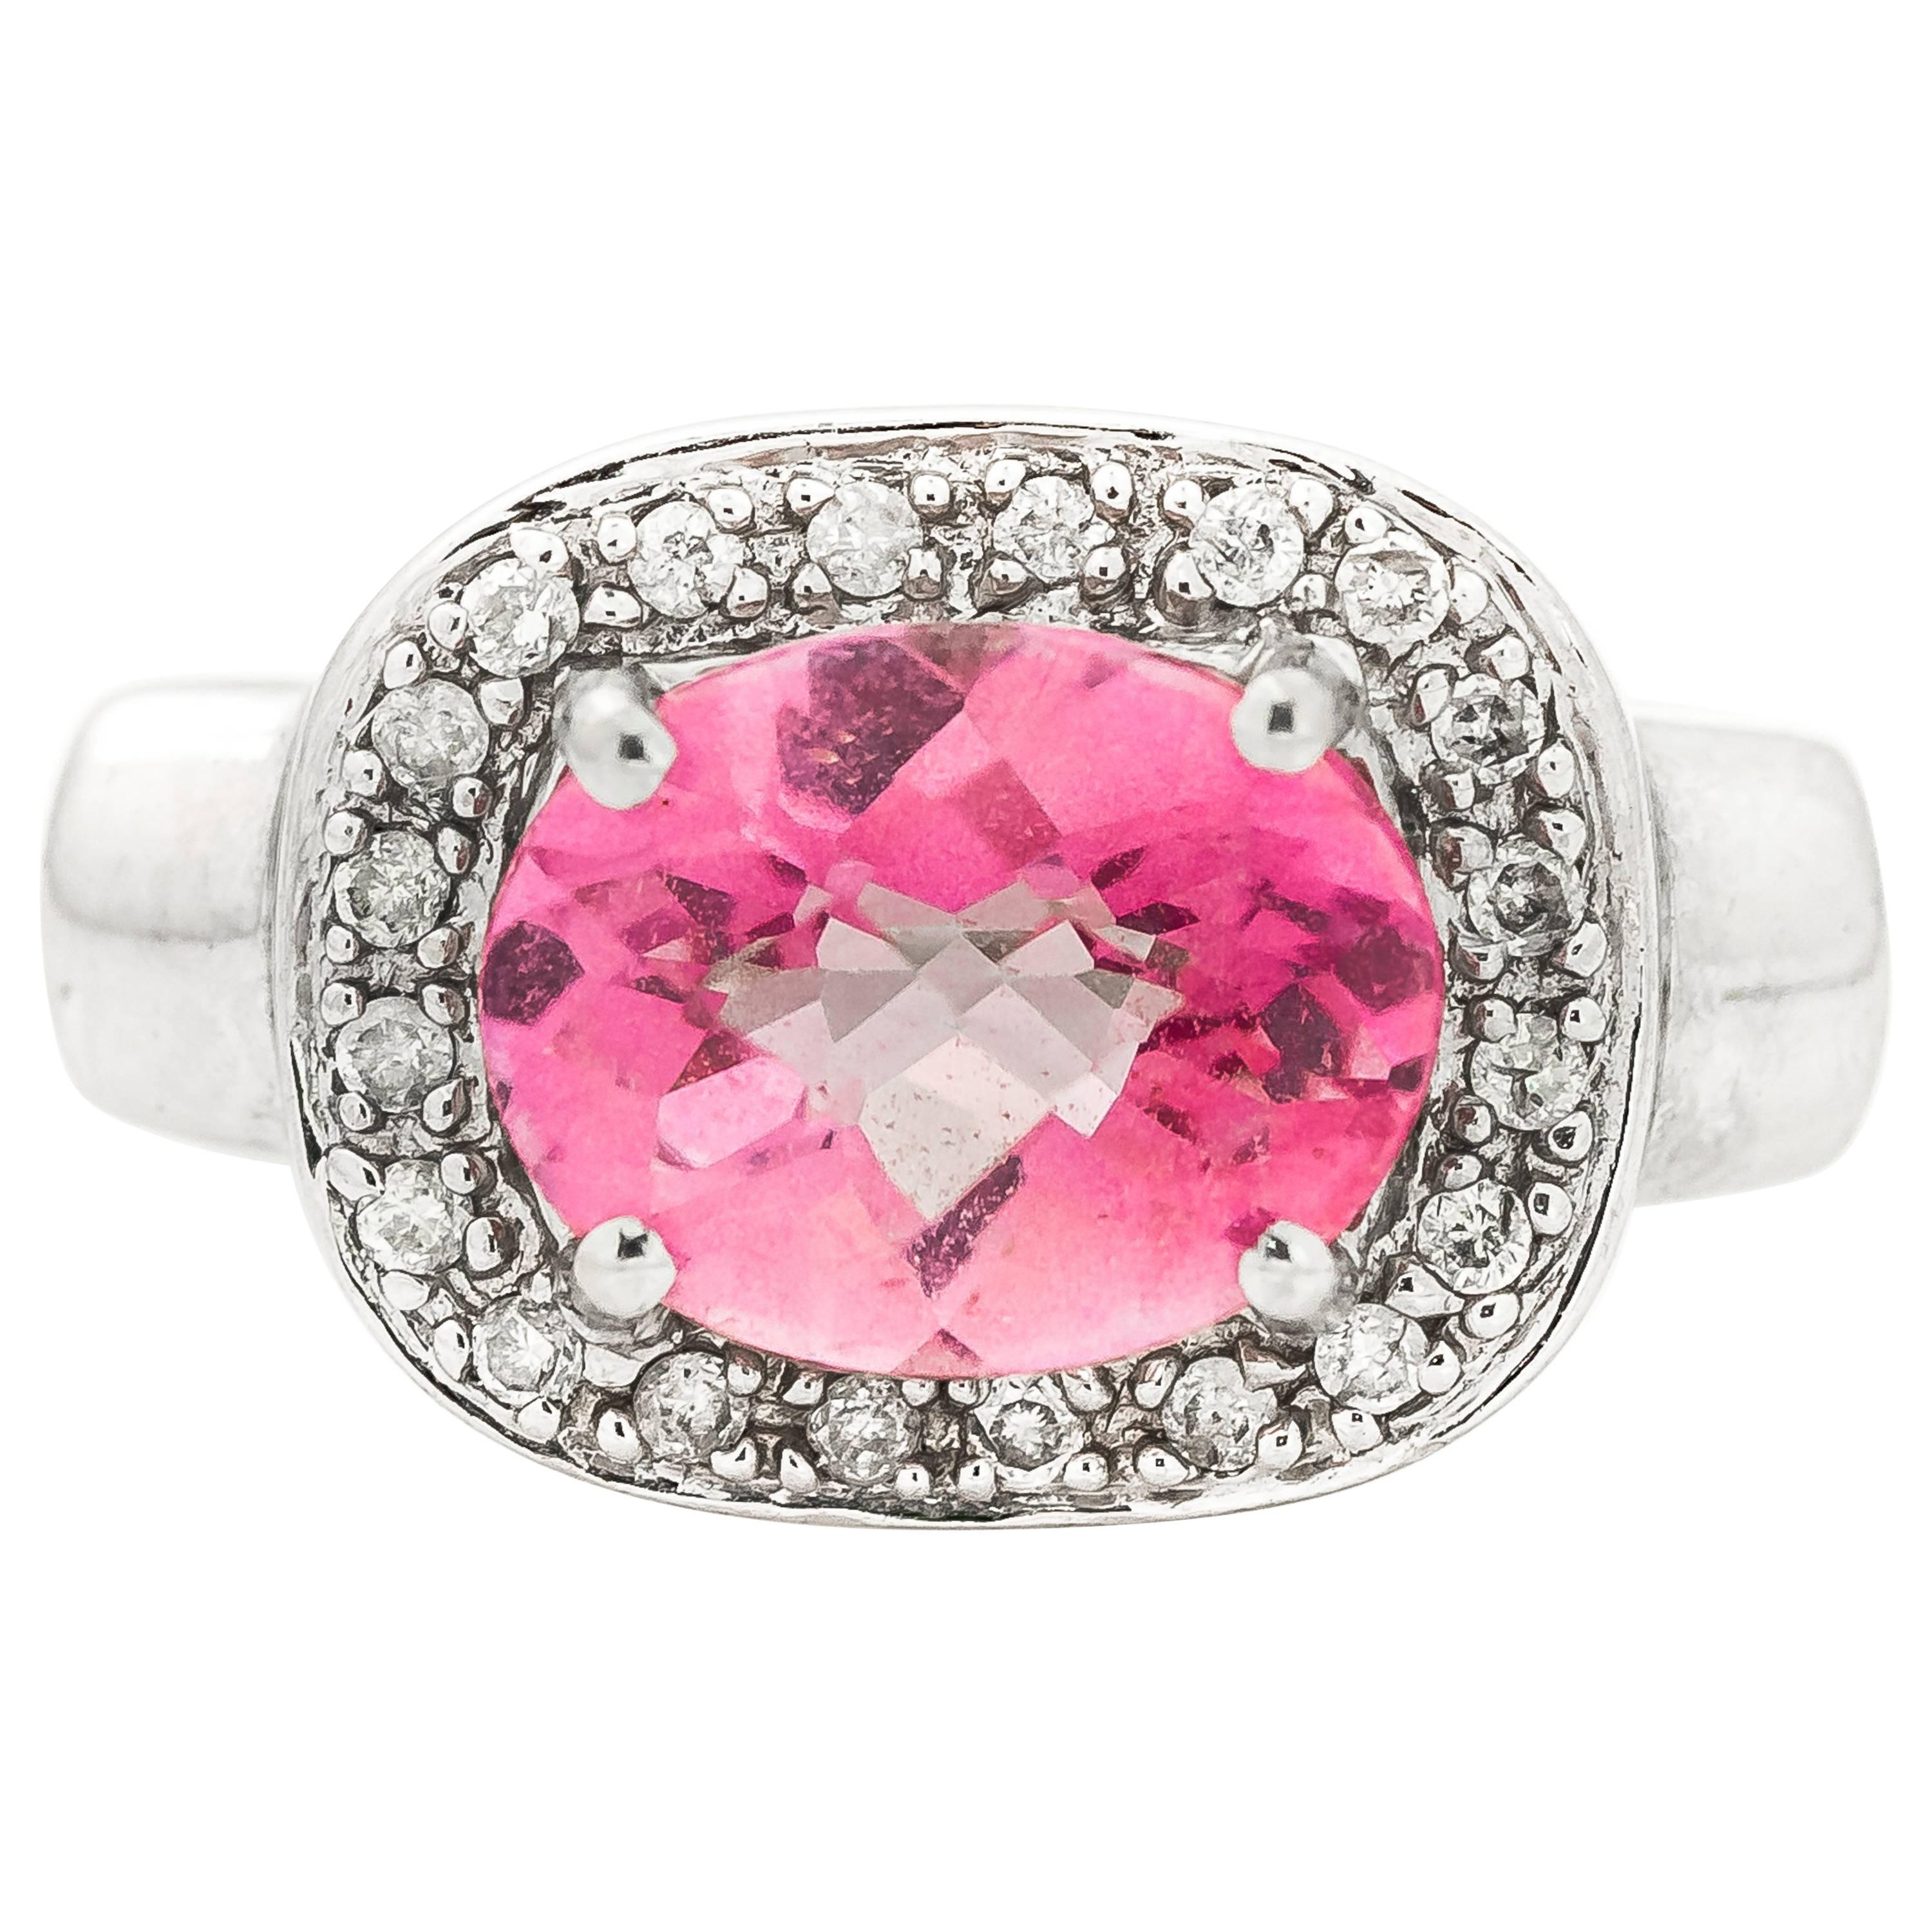 Ballerina Ring with 5 Carat Tourmaline and Diamonds For Sale at 1stdibs